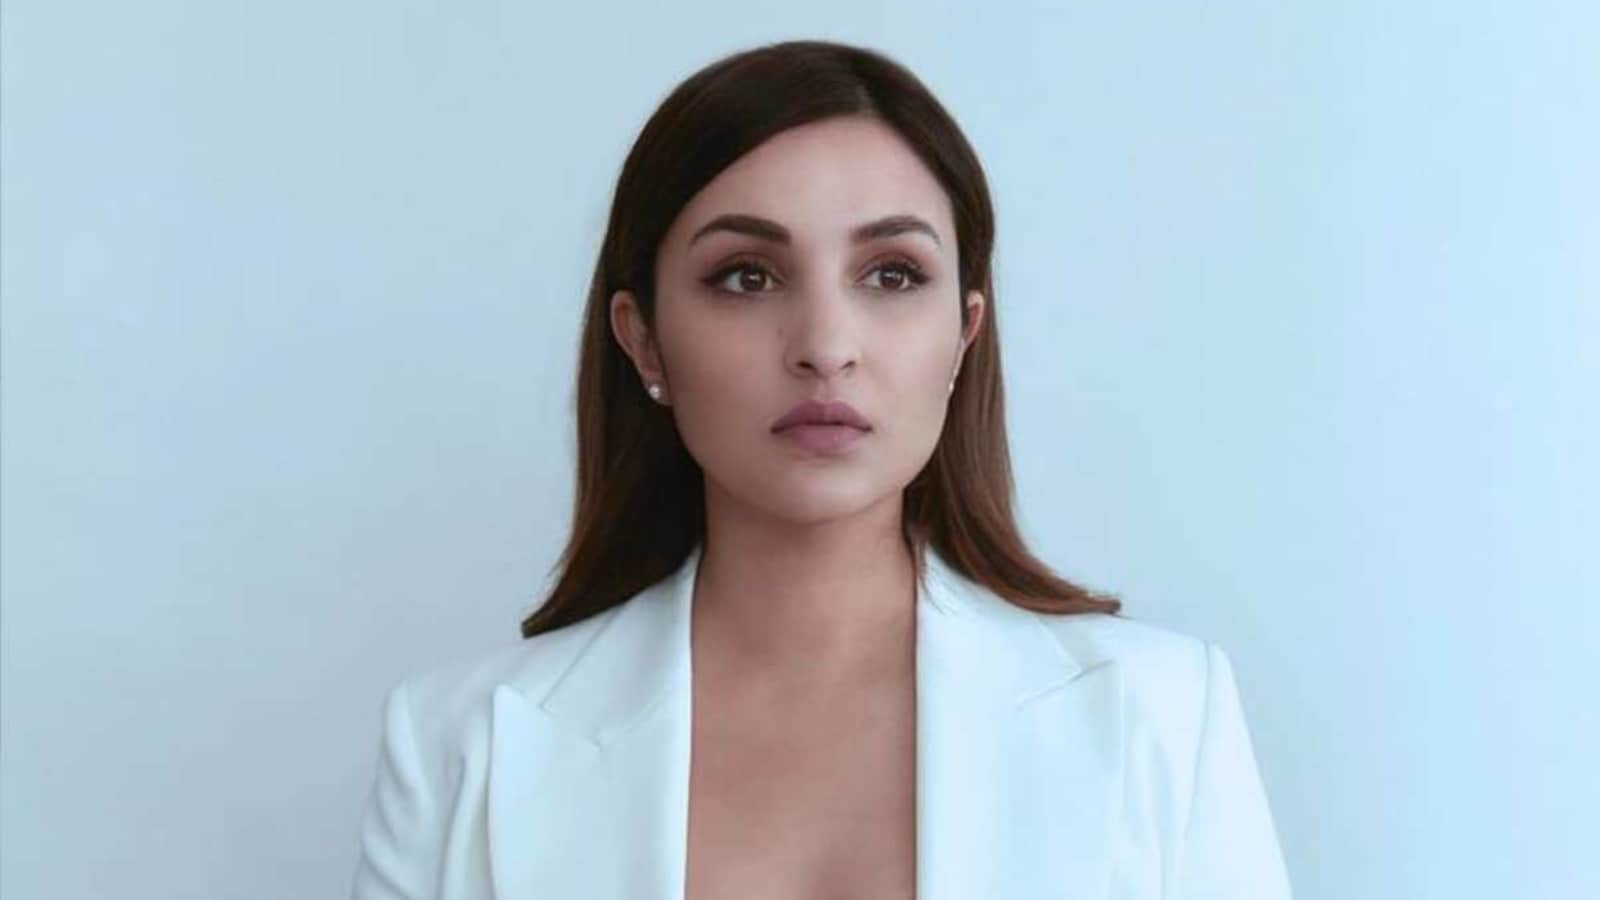 Parineeti Chopra appeals to Zomato to find out the 'truth', 'penalise the woman' in delivery man row - Hindustan Times